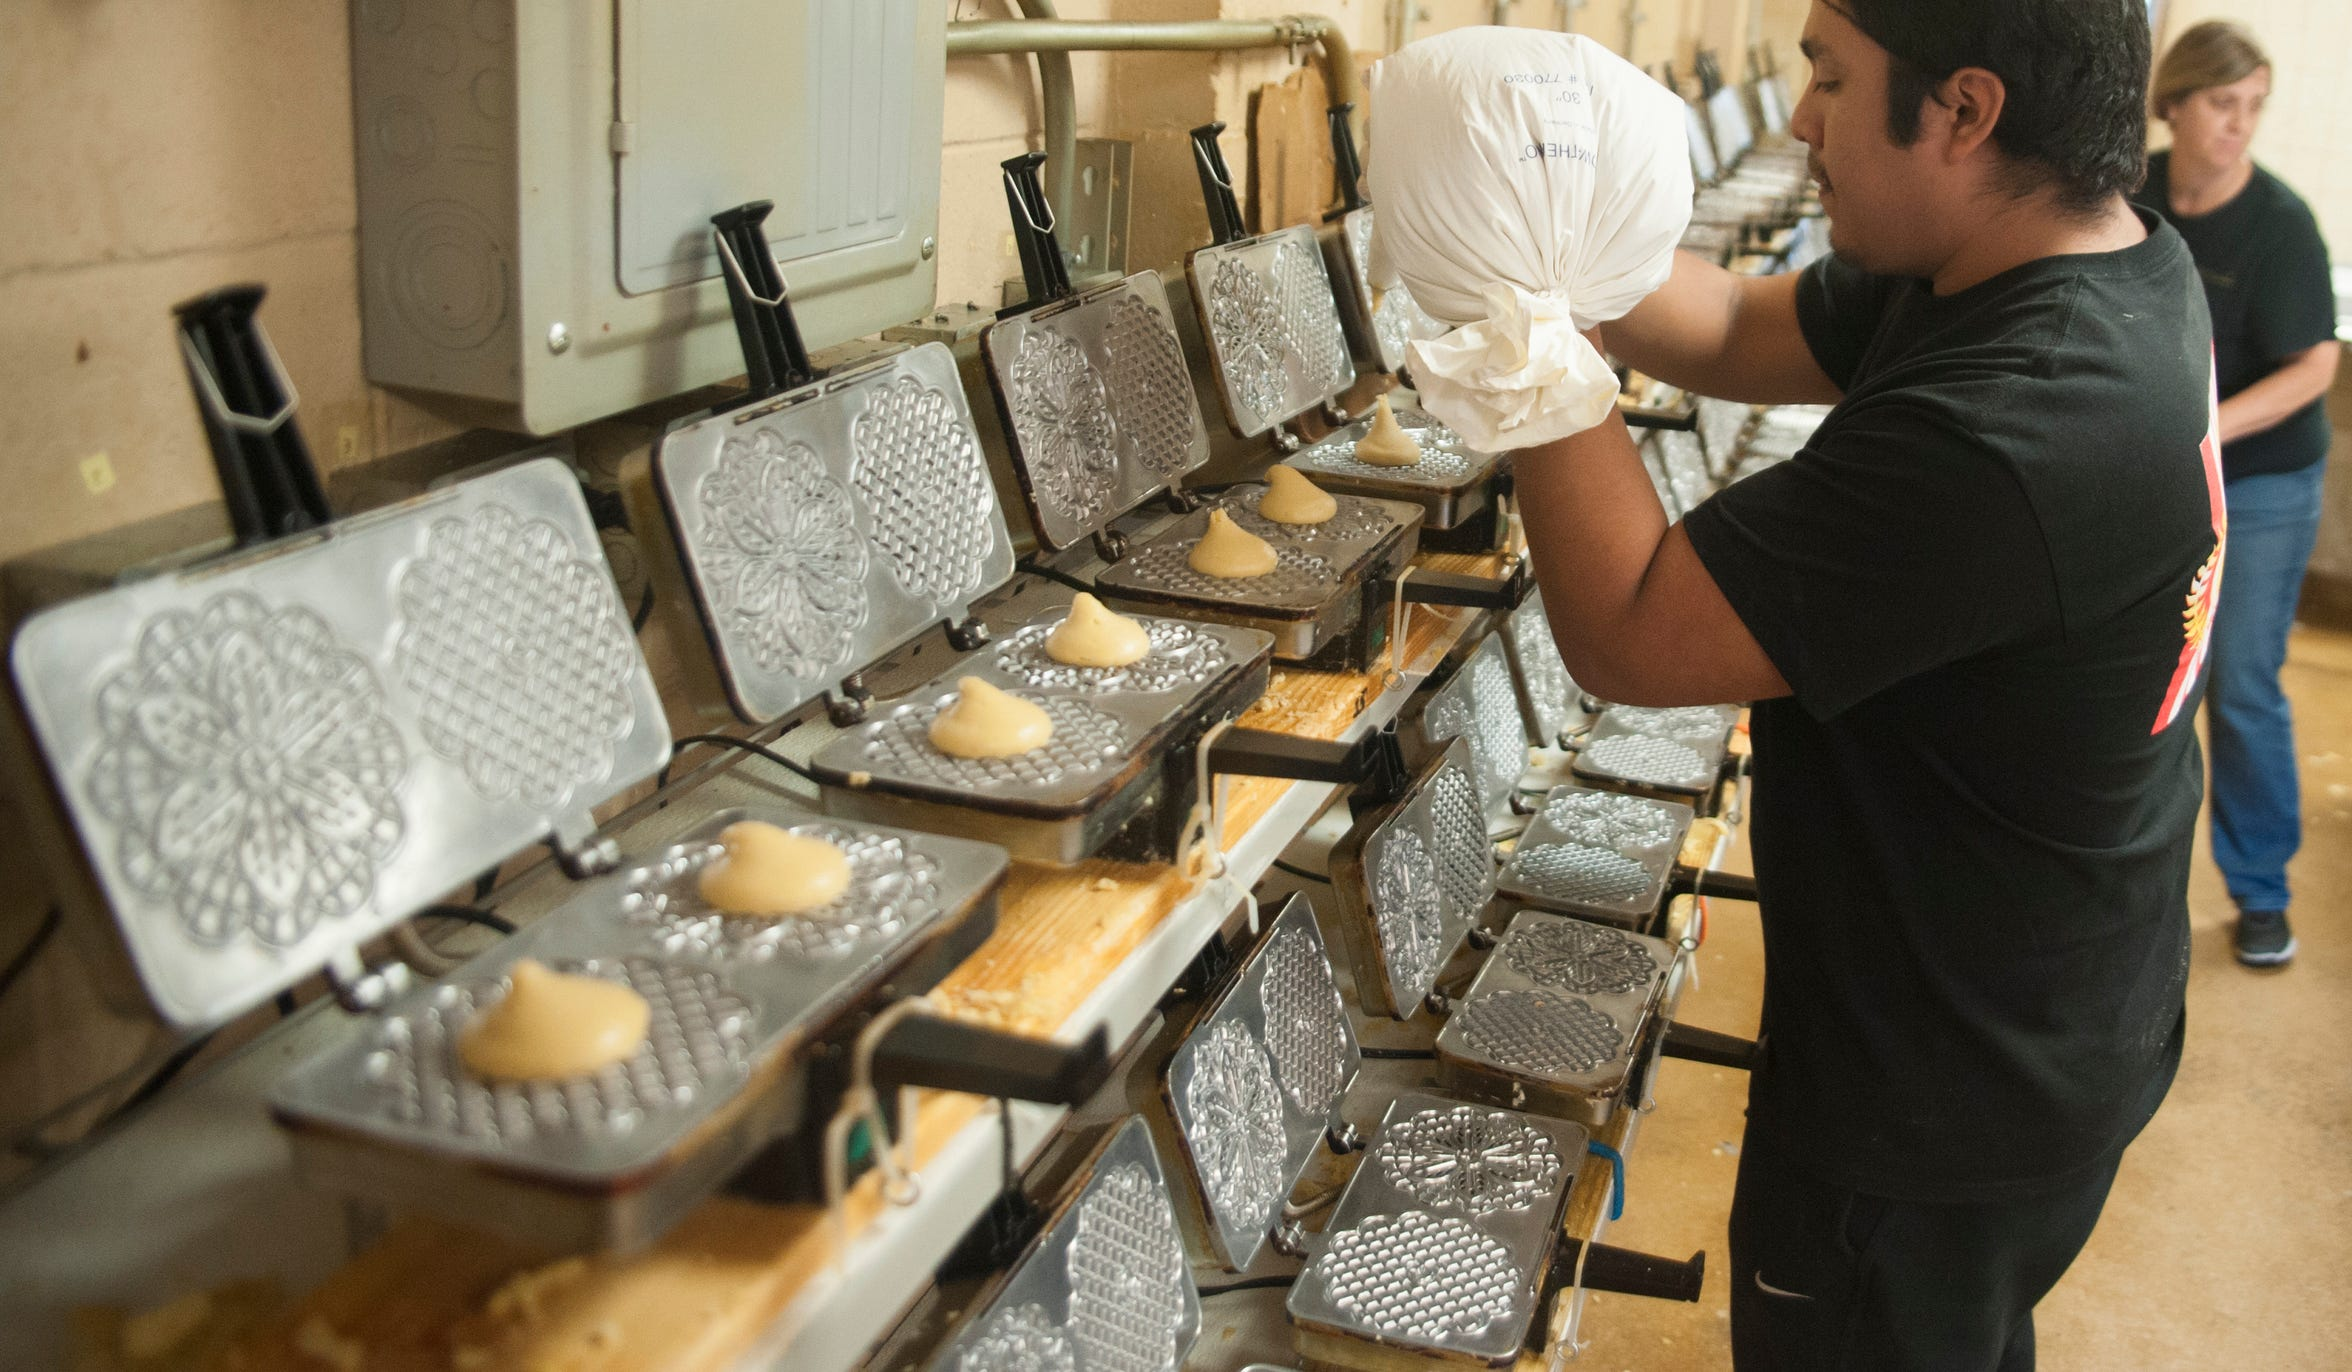 Baker Victor Christian Garcia loads batter into pizelle irons at Del Buono's Pizzelle Company in Bellmawr.